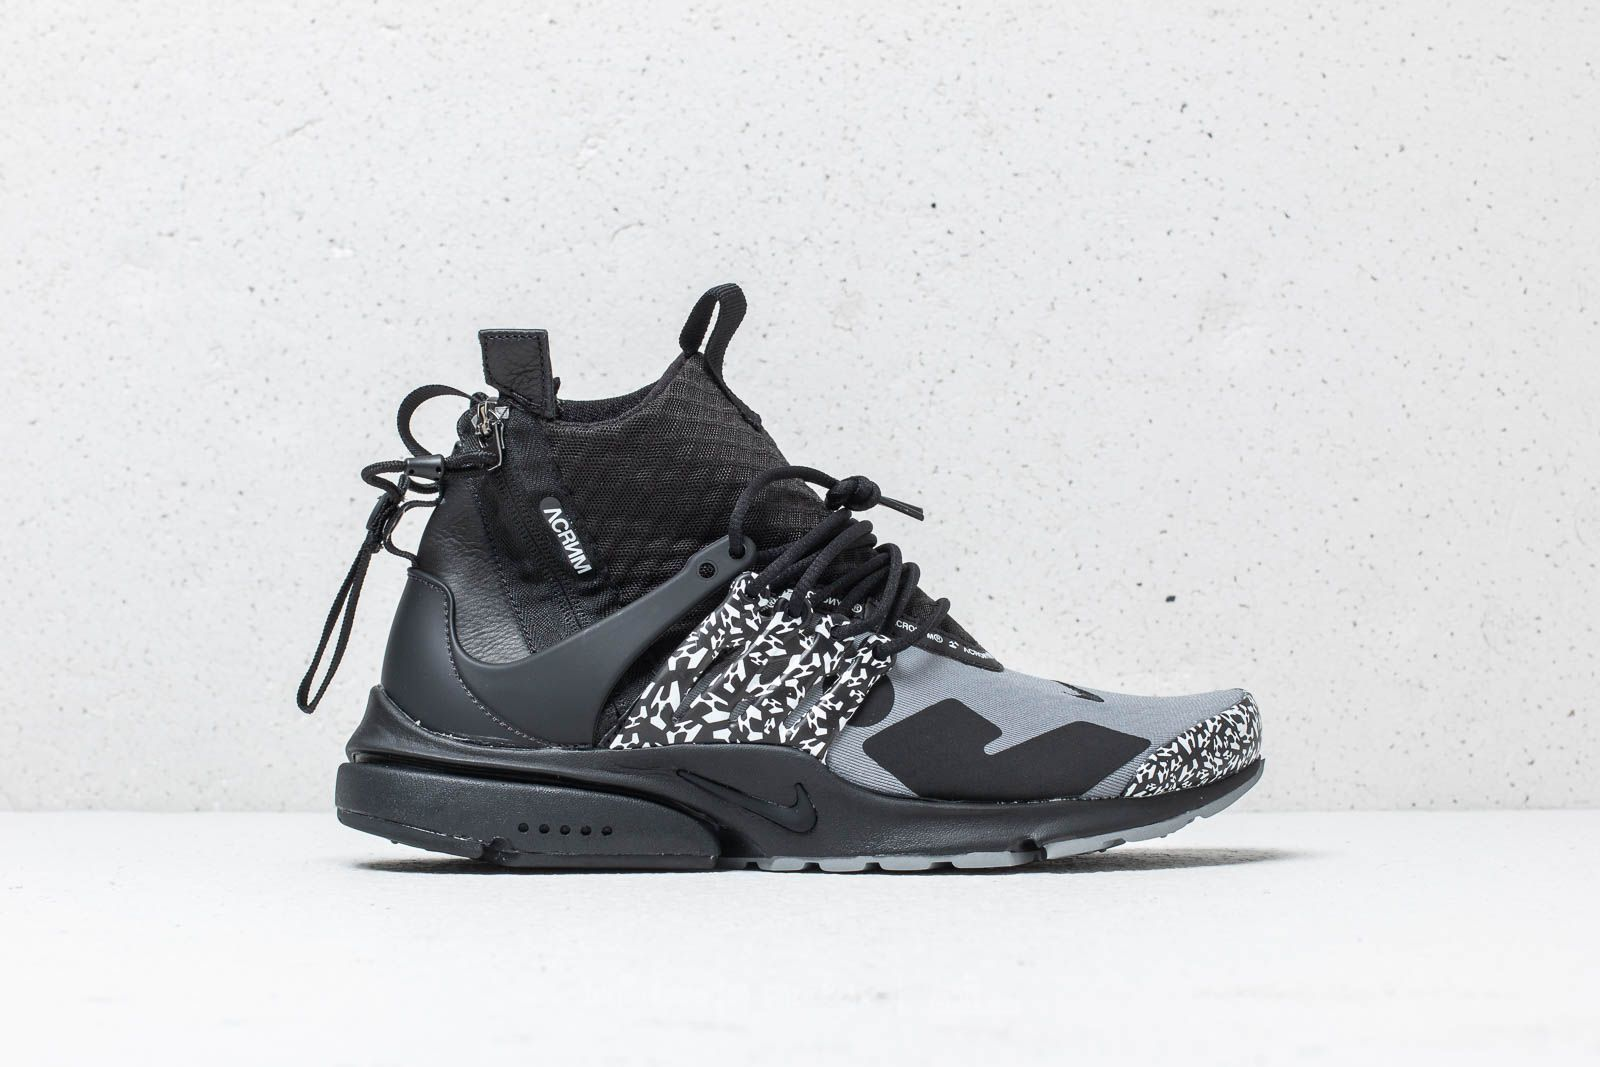 sports shoes b6b08 70242 Nike x Acronym Air Presto Mid Cool Grey Black at a great price 198 €